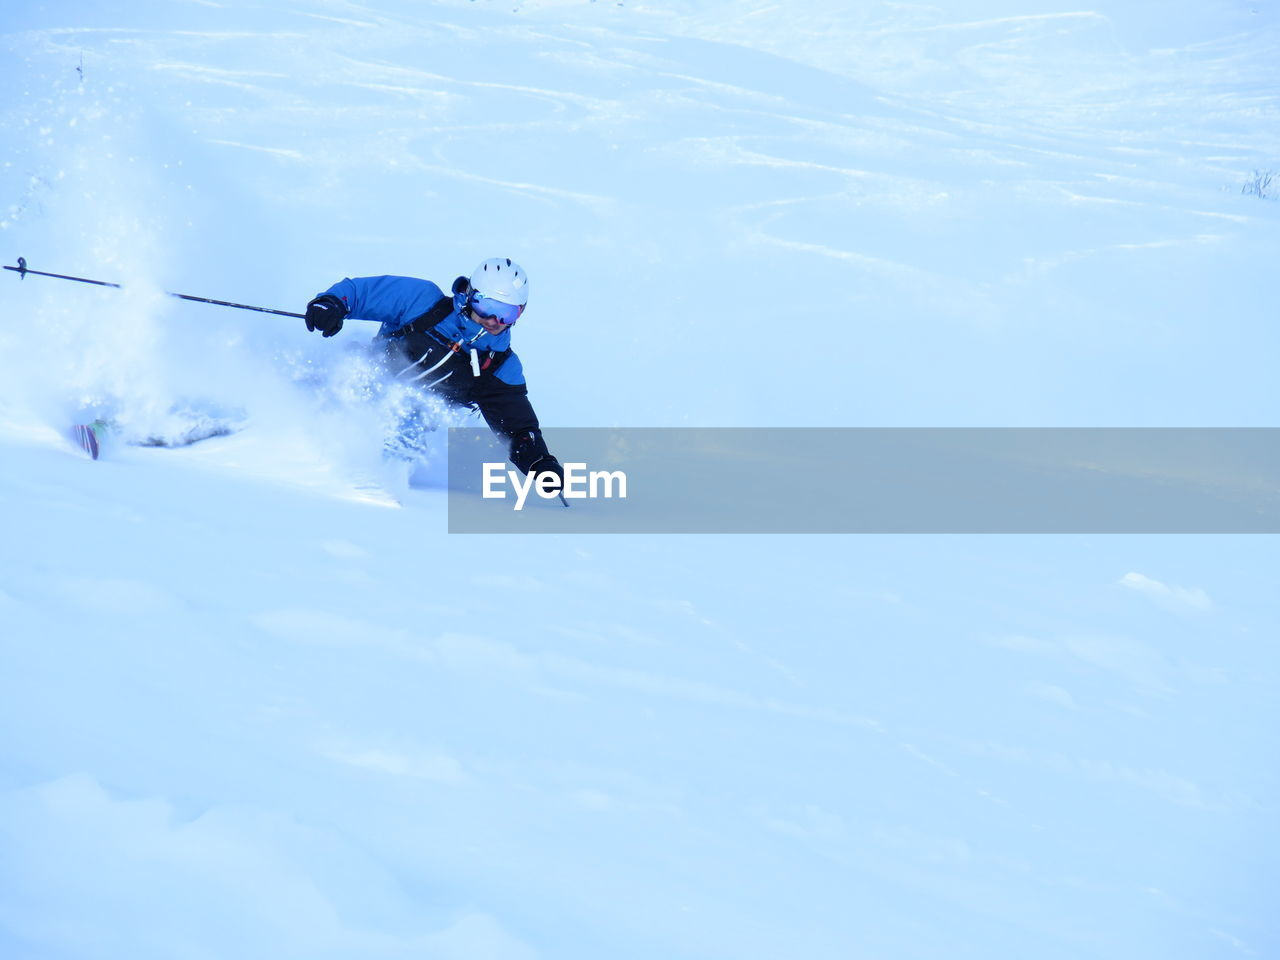 Man skiing on snow covered hill